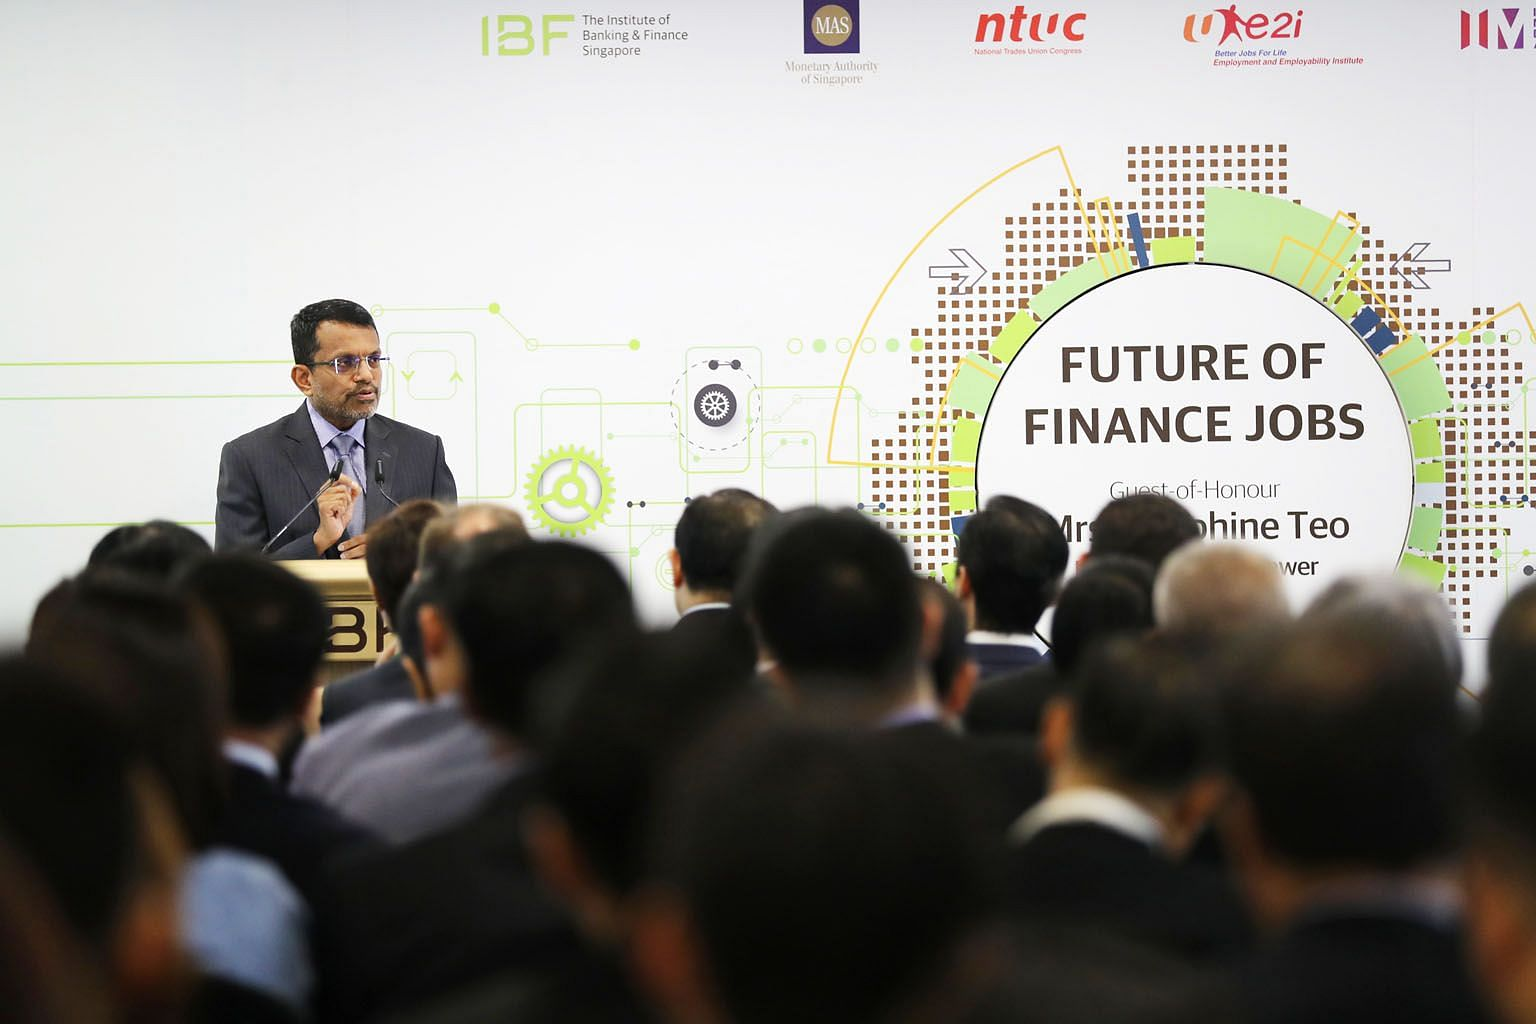 Monetary Authority of Singapore chief Ravi Menon said at the report's release yesterday that while many financial sector jobs have not disappeared, the tasks within these jobs have changed because of technology.